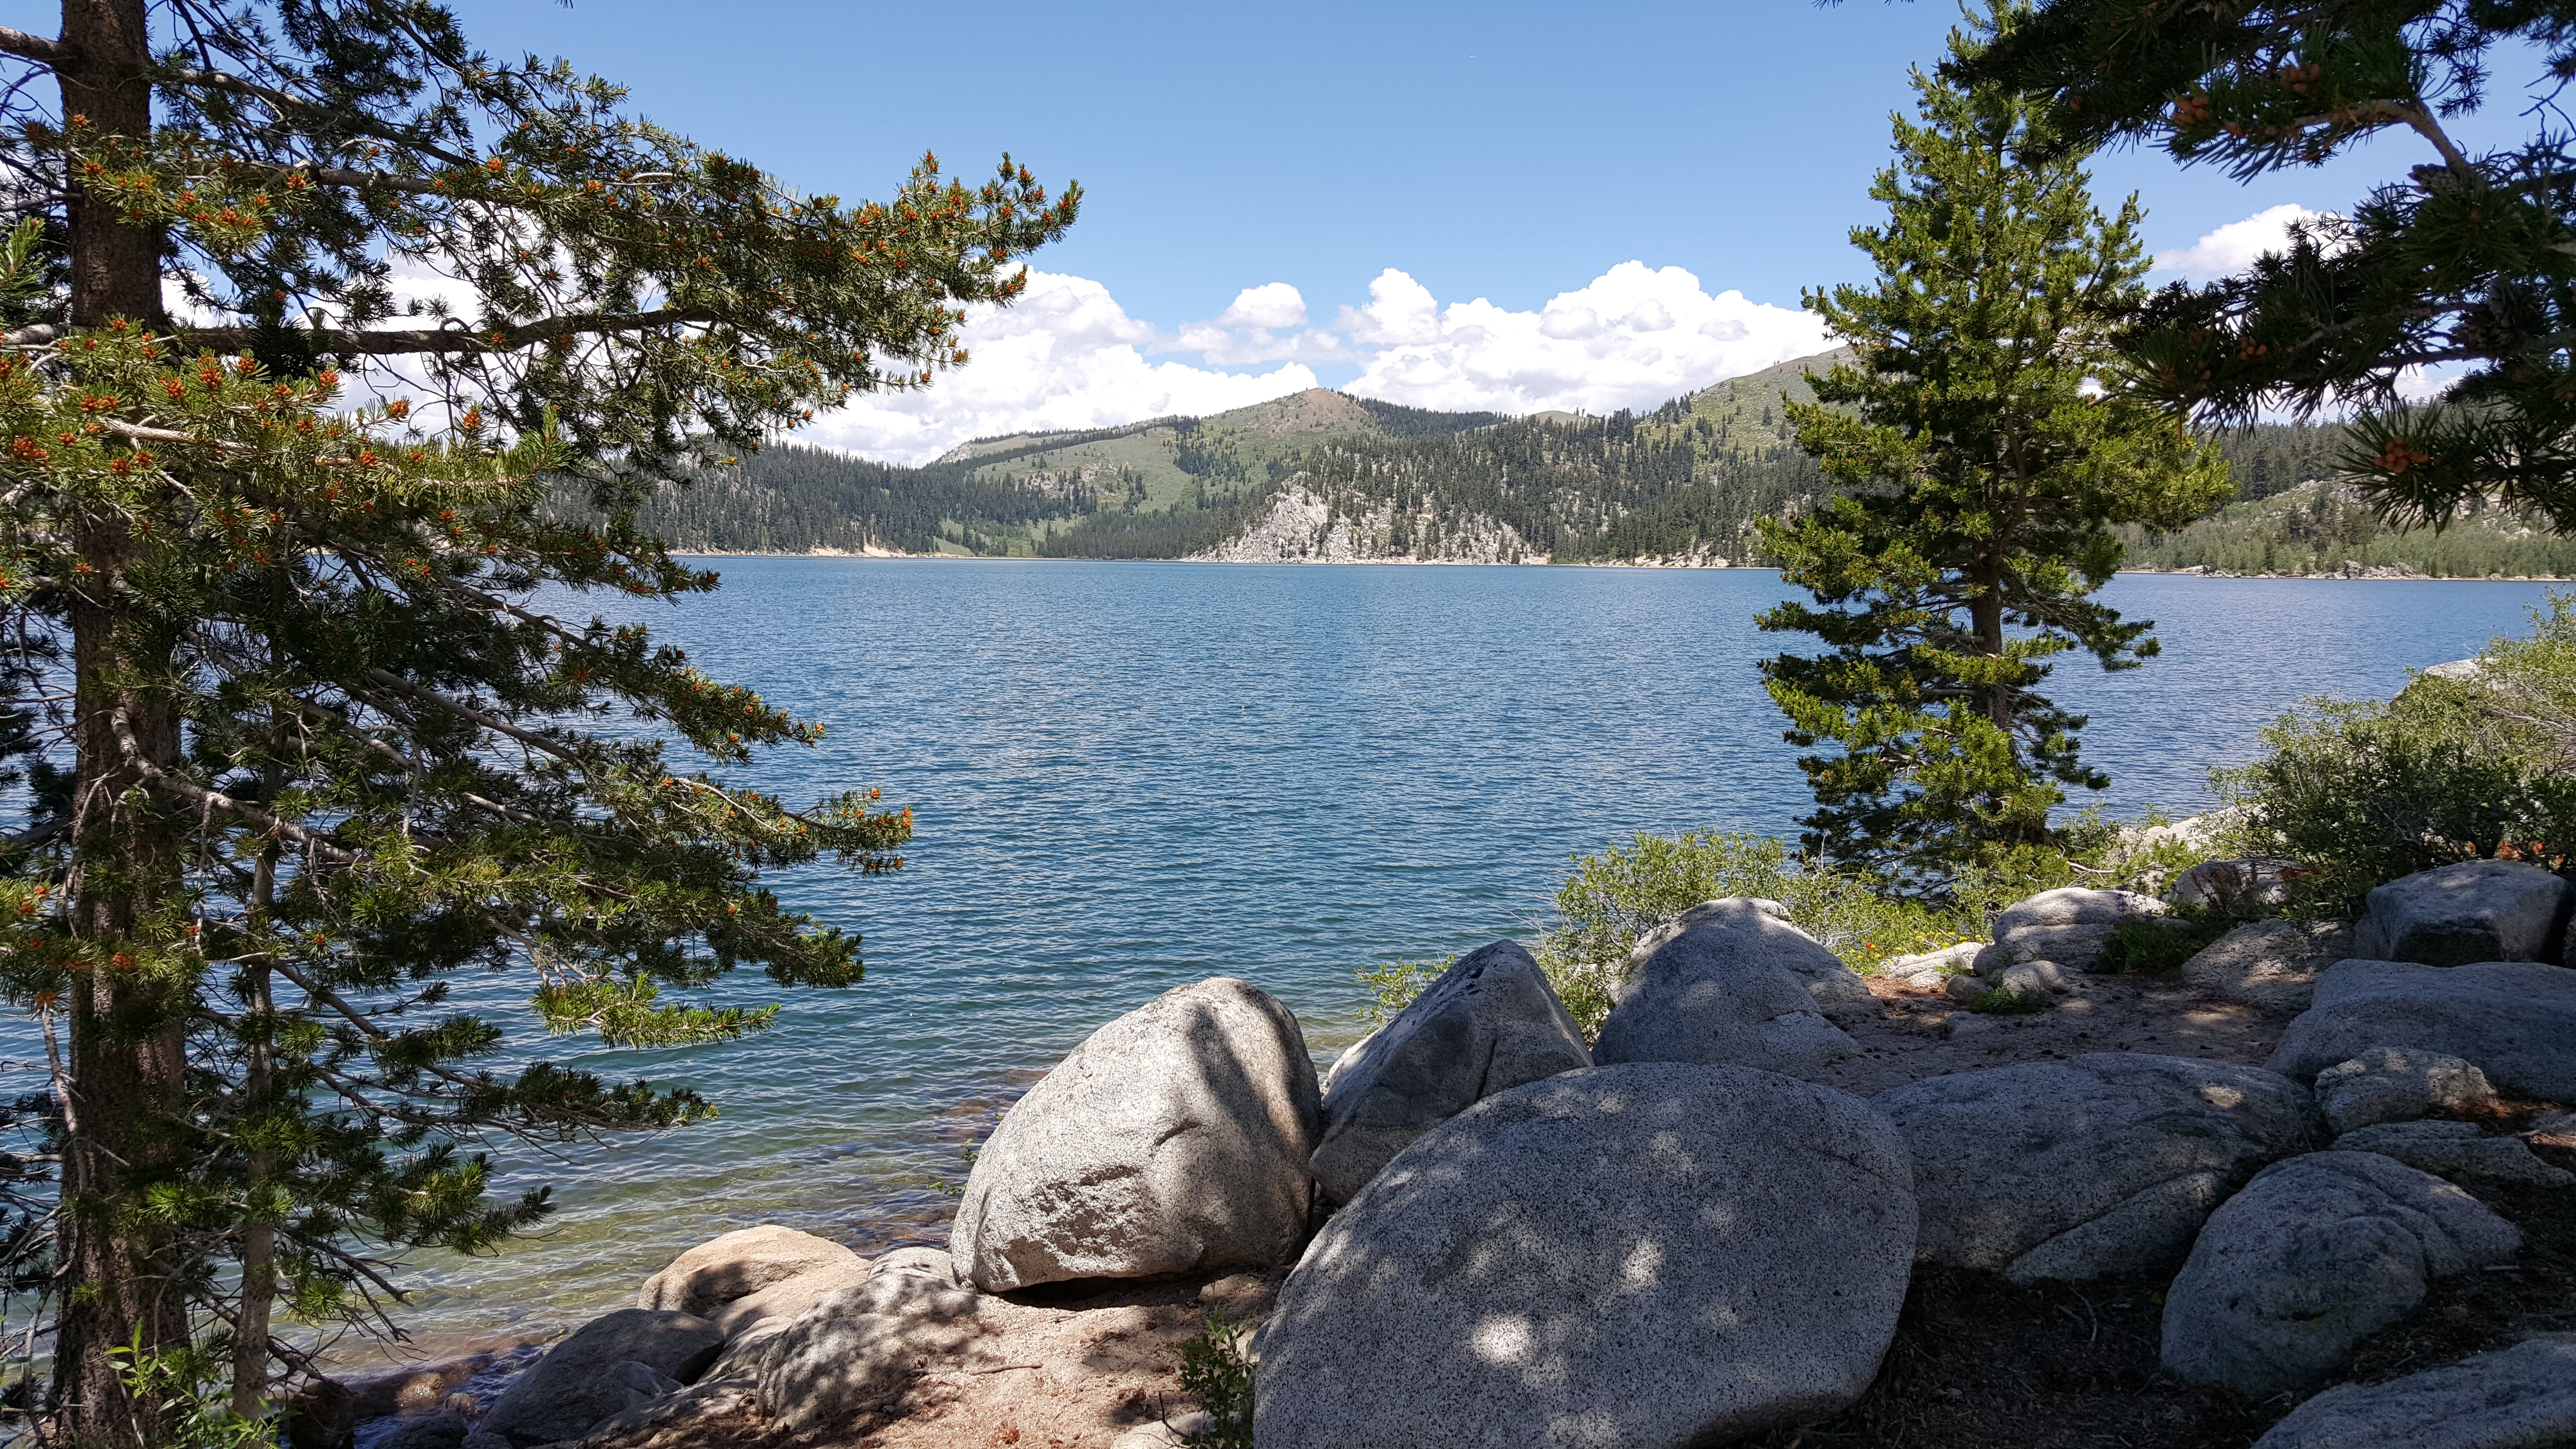 lake tahoe personals Personal ads for south lake tahoe, ca are a great way to find a life partner, movie date, or a quick hookup personals are for people local to south lake tahoe, ca.